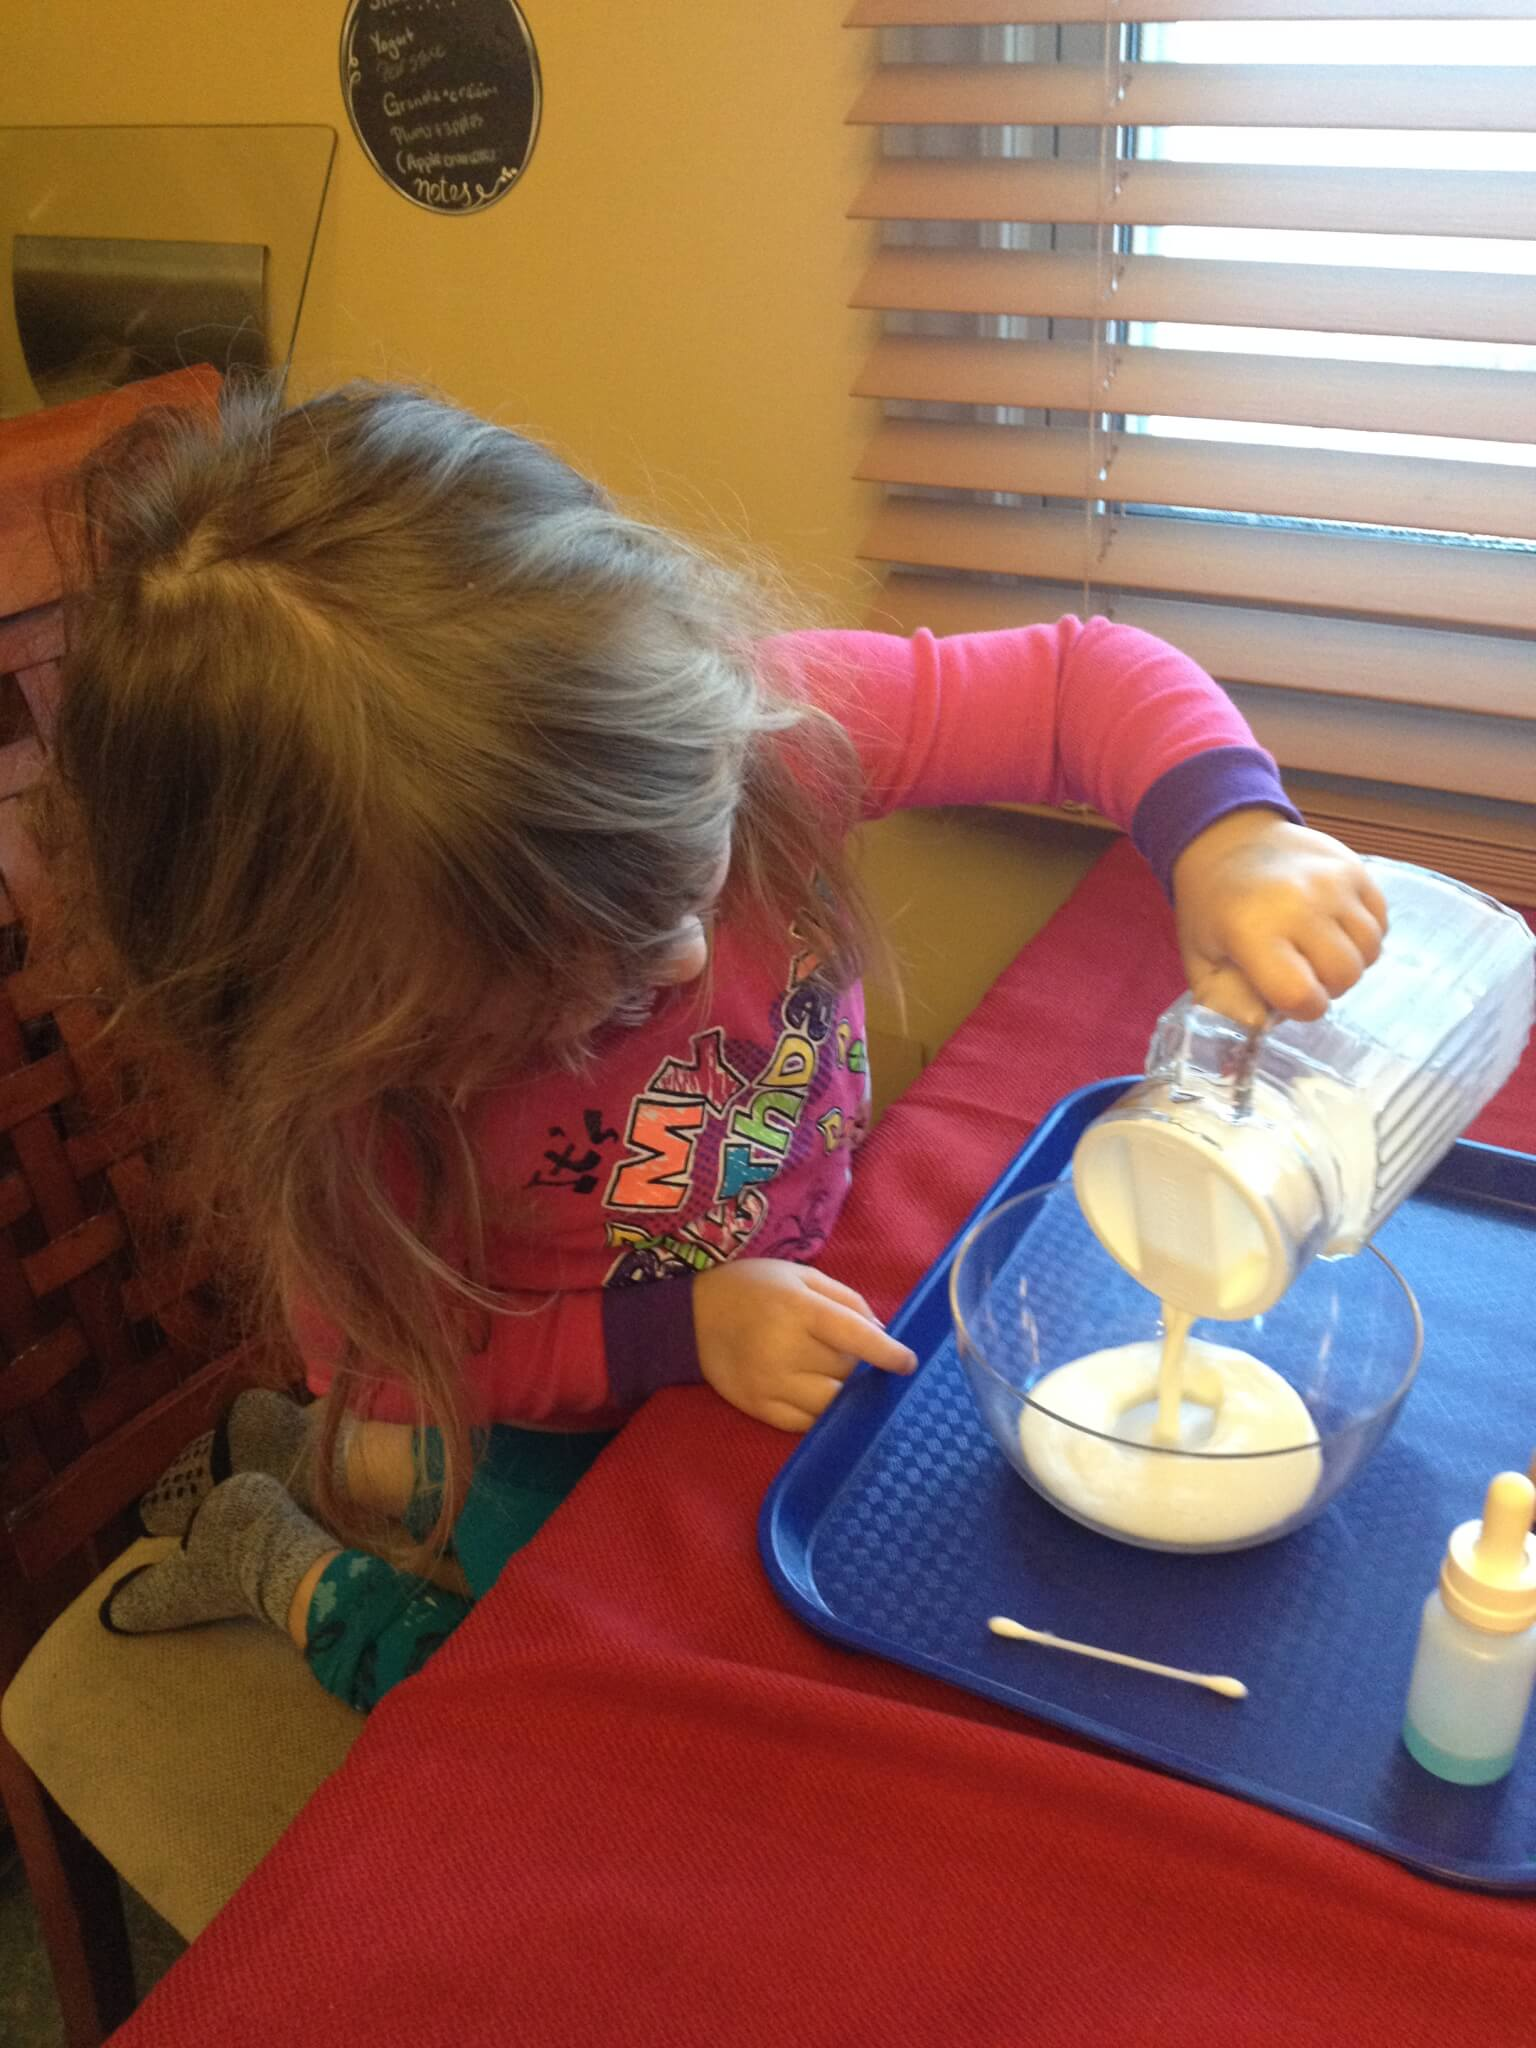 milk and dish soap experiment: pouring milk is a montessori practical life skill used in this fun science experiment